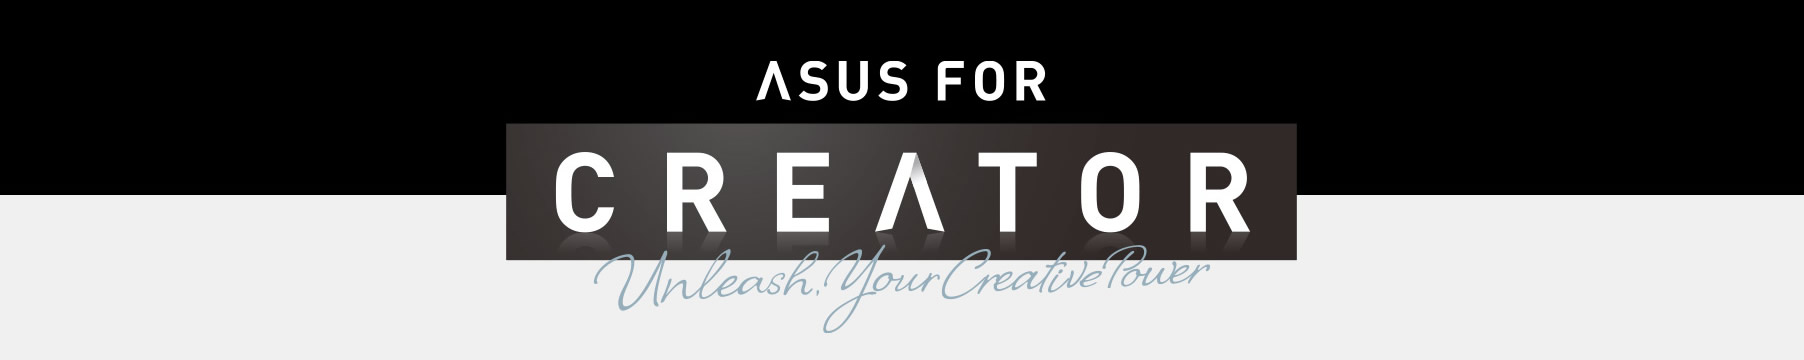 ASUS FOR CREATOR - Unleash, Your Creative Power.